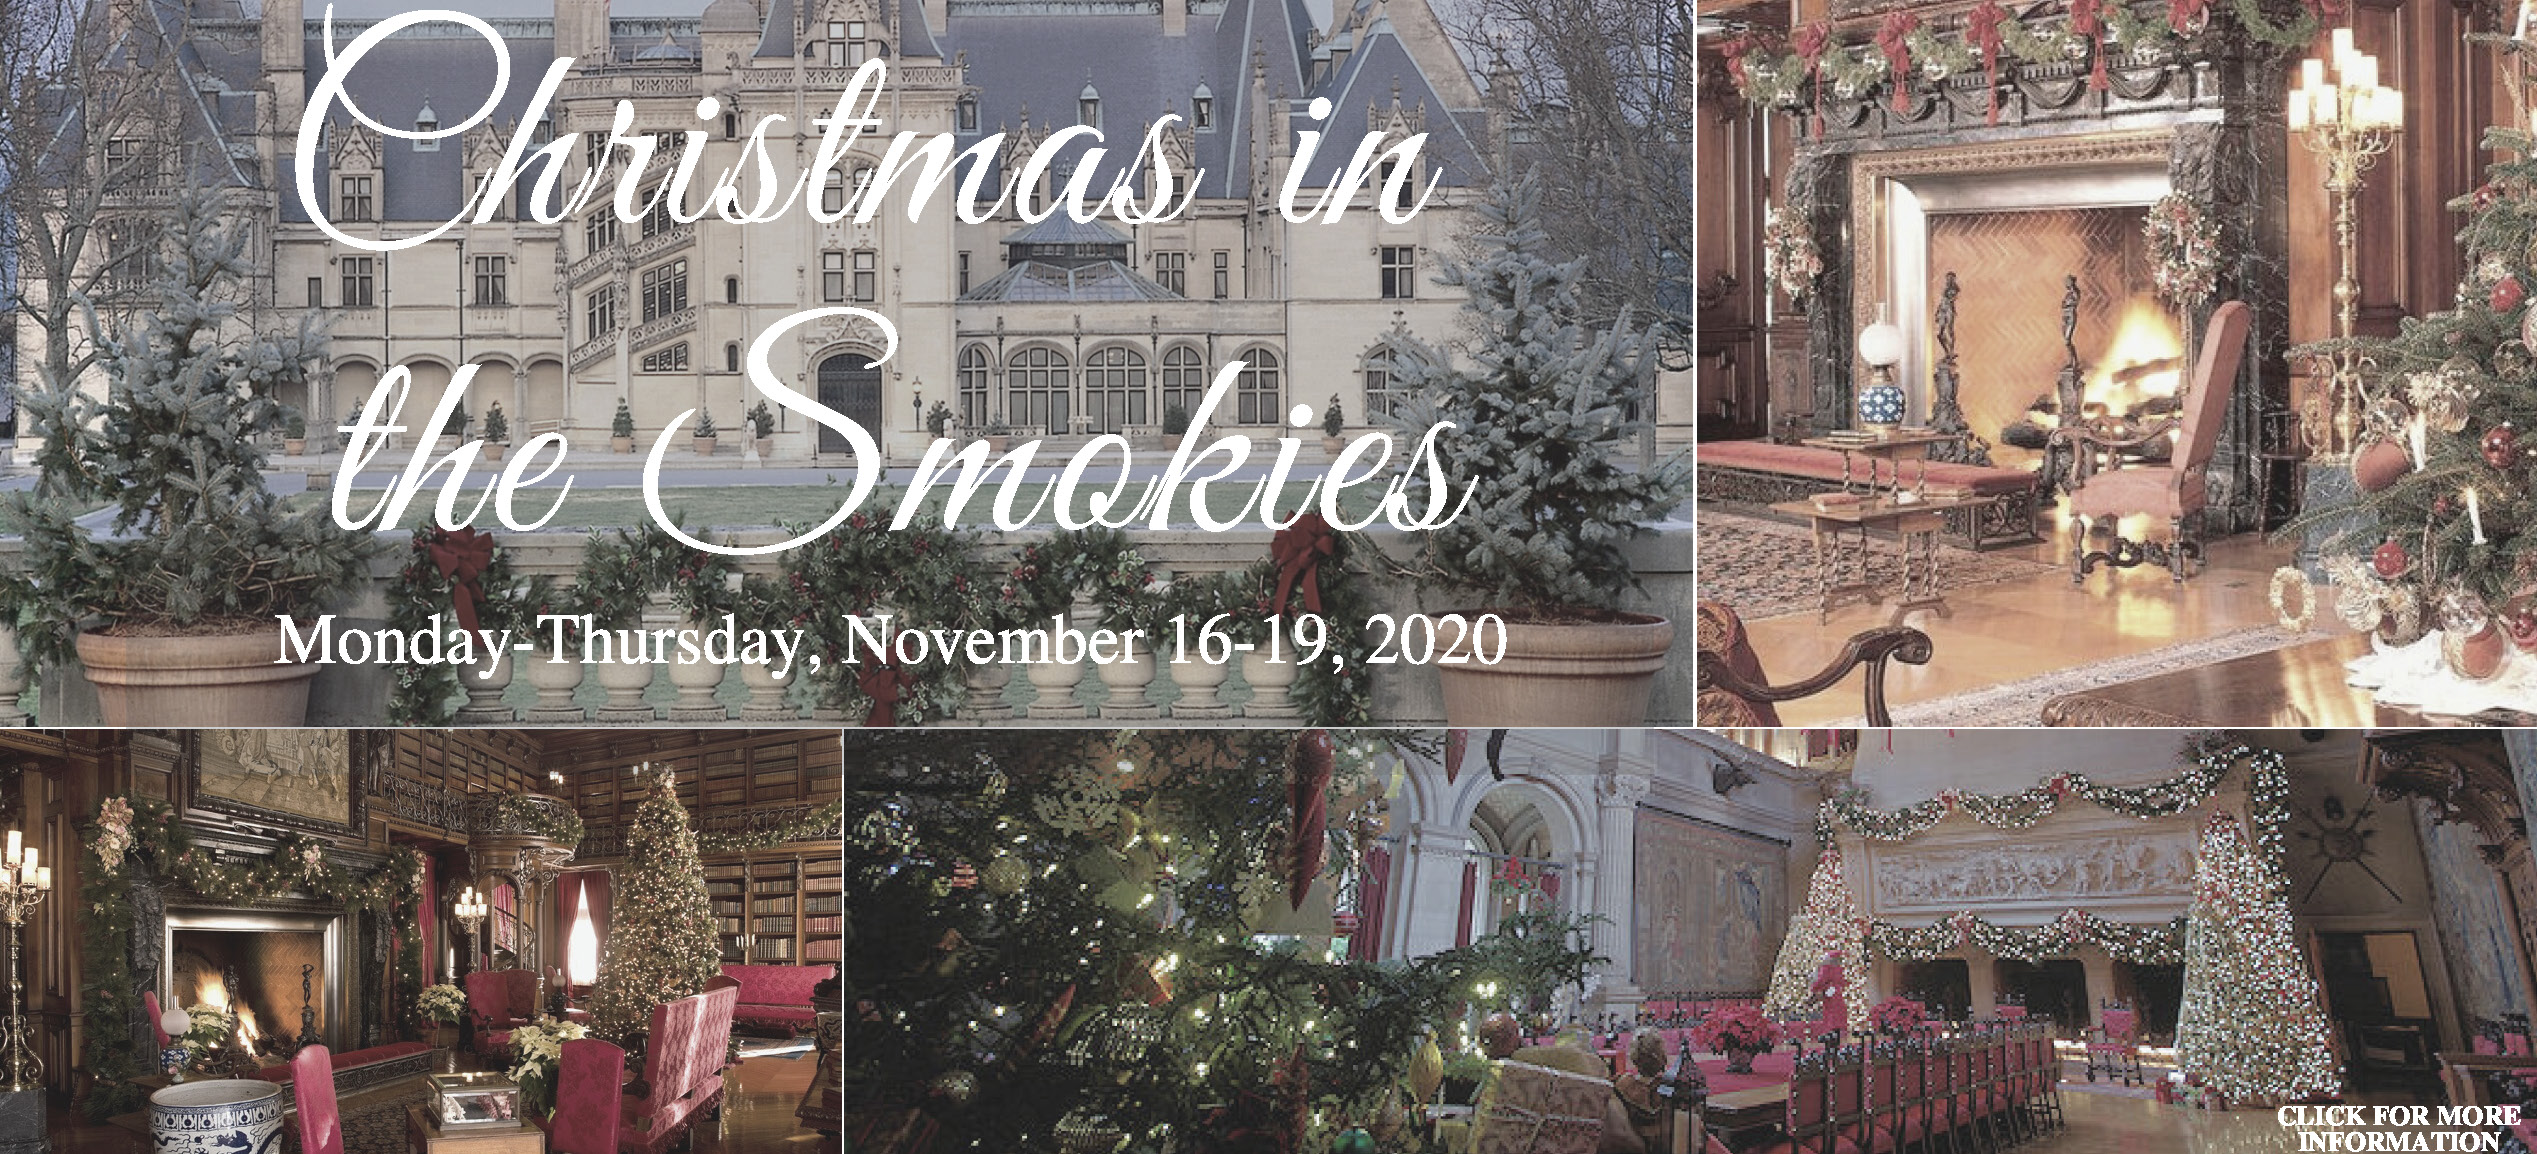 Christmas Day Services 2020 Near Me Thomas Tours and Travel